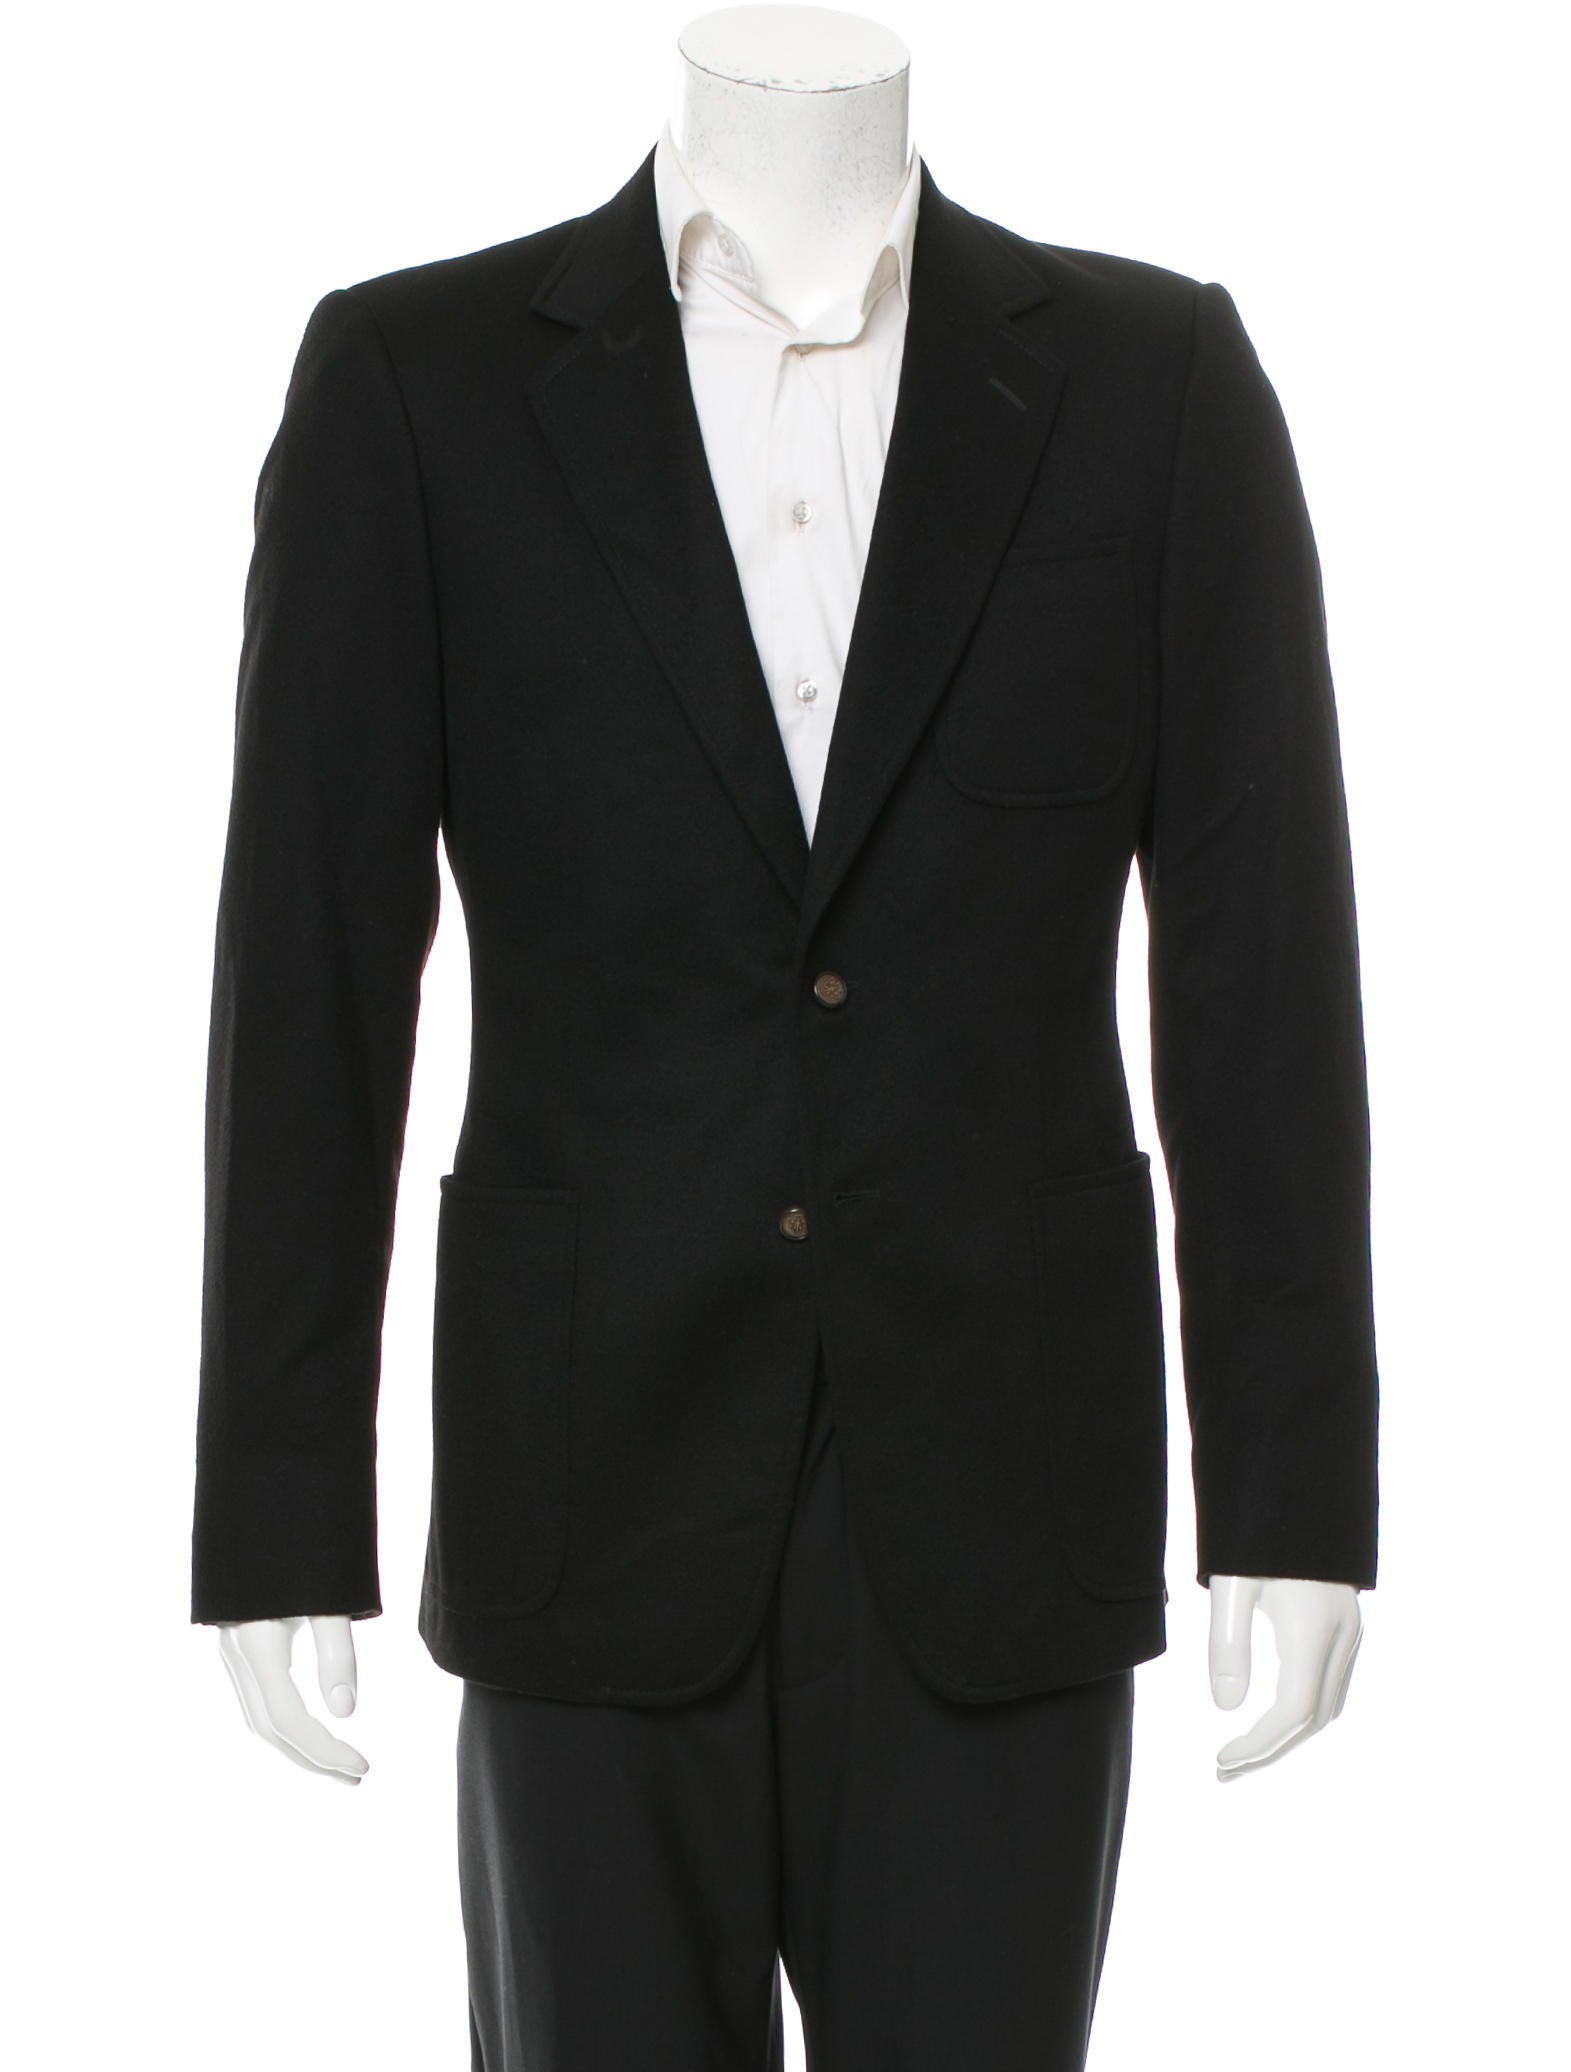 Gucci Two-Button Cashmere Sport Coat - Clothing - GUC141887 | The RealReal